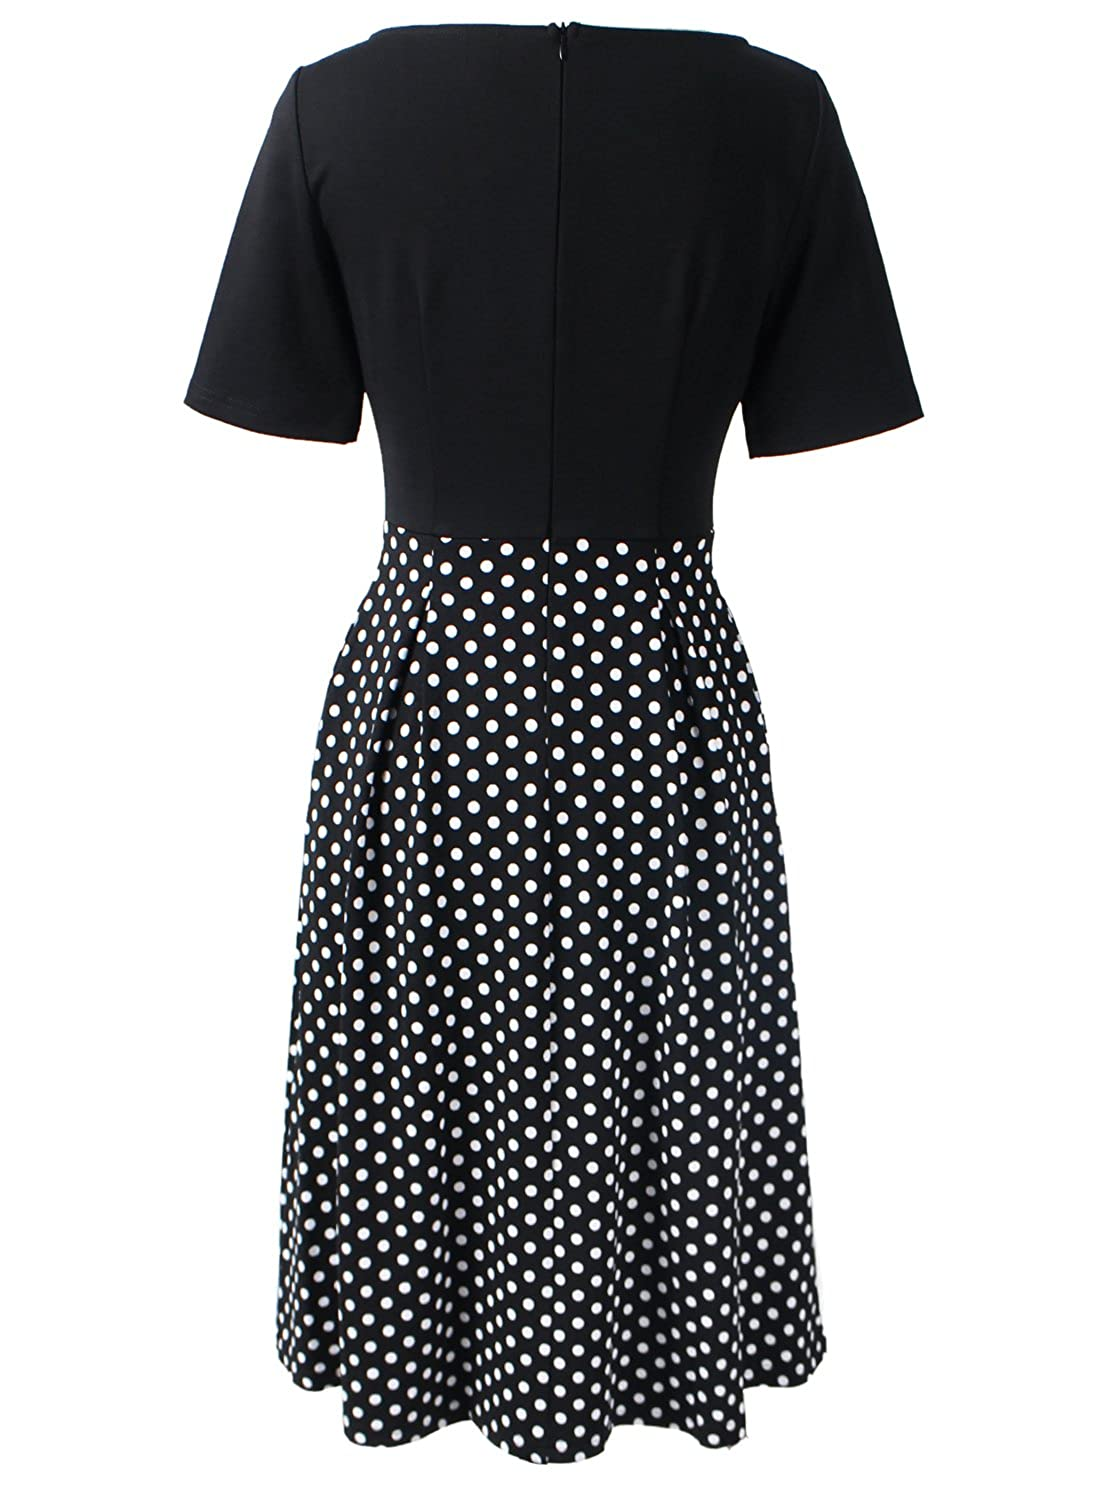 e9ae7025a997e VfEmage Womens Vintage Summer Polka Dot Wear To Work Casual A-line Dress:  Amazon.ca: Clothing & Accessories